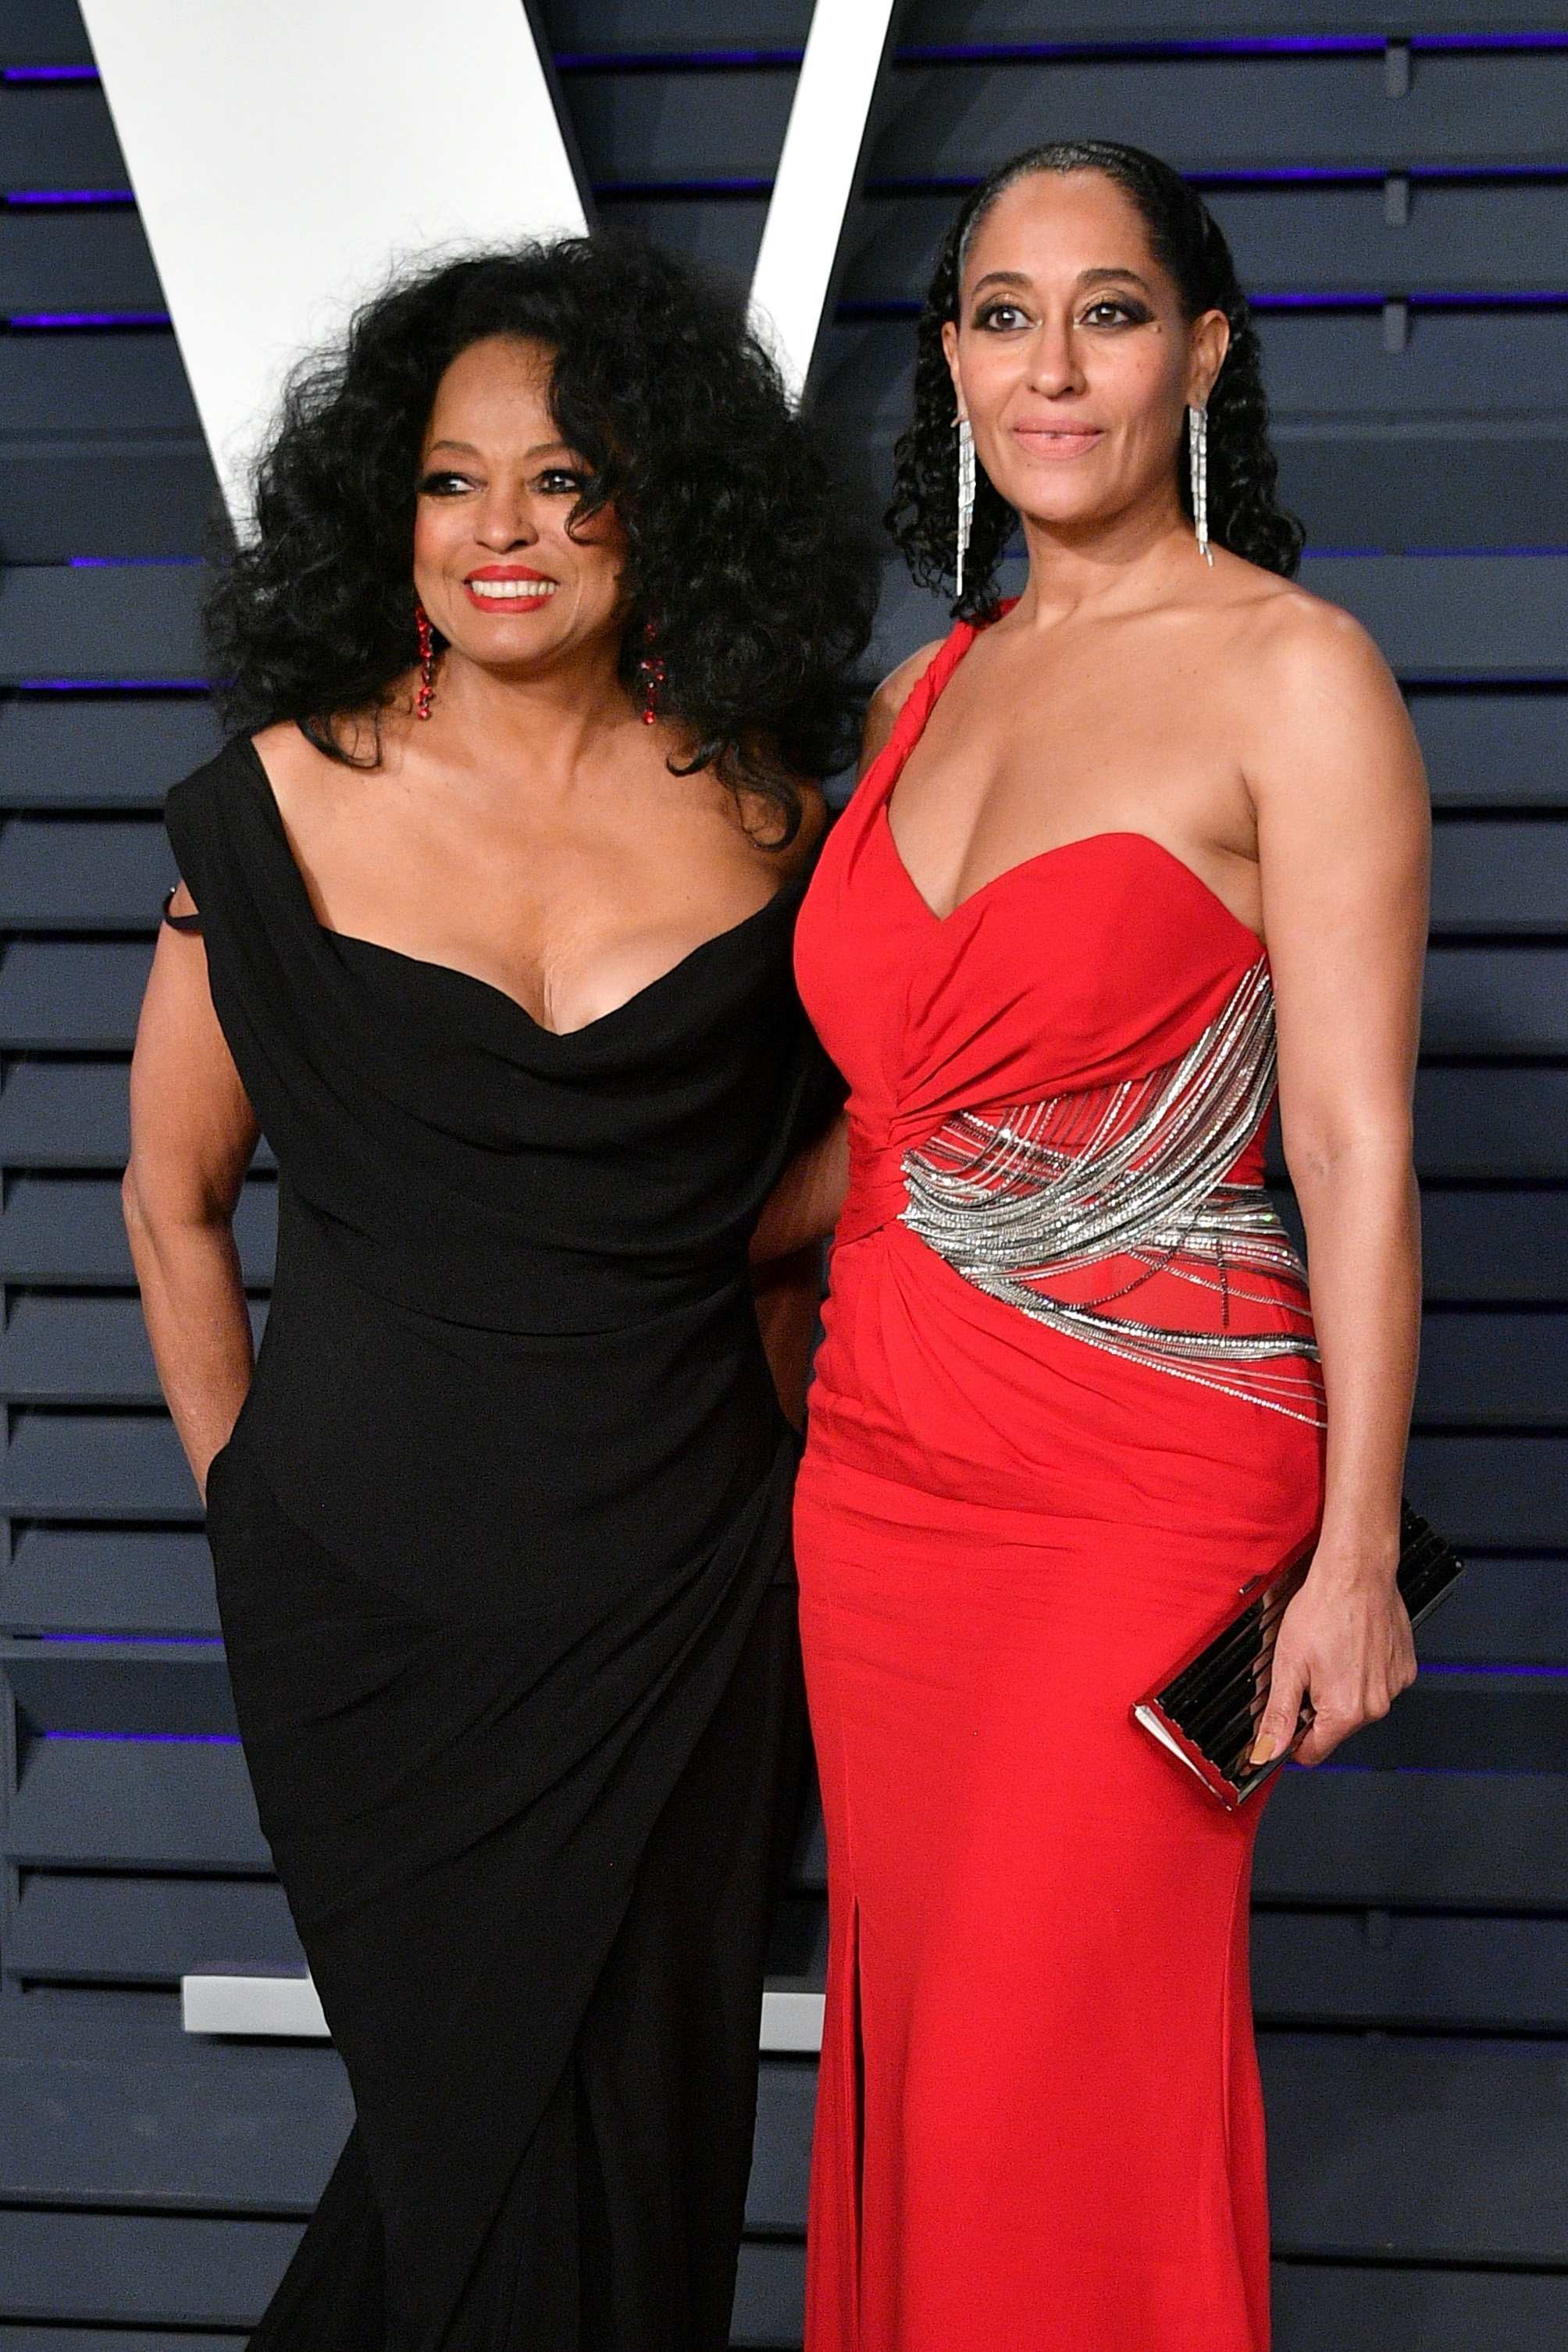 Diana Ross and Tracee Ellis Ross attend the Vanity Fair Oscar Party in Beverly Hills, California in February 2019 | Photo: Getty Images